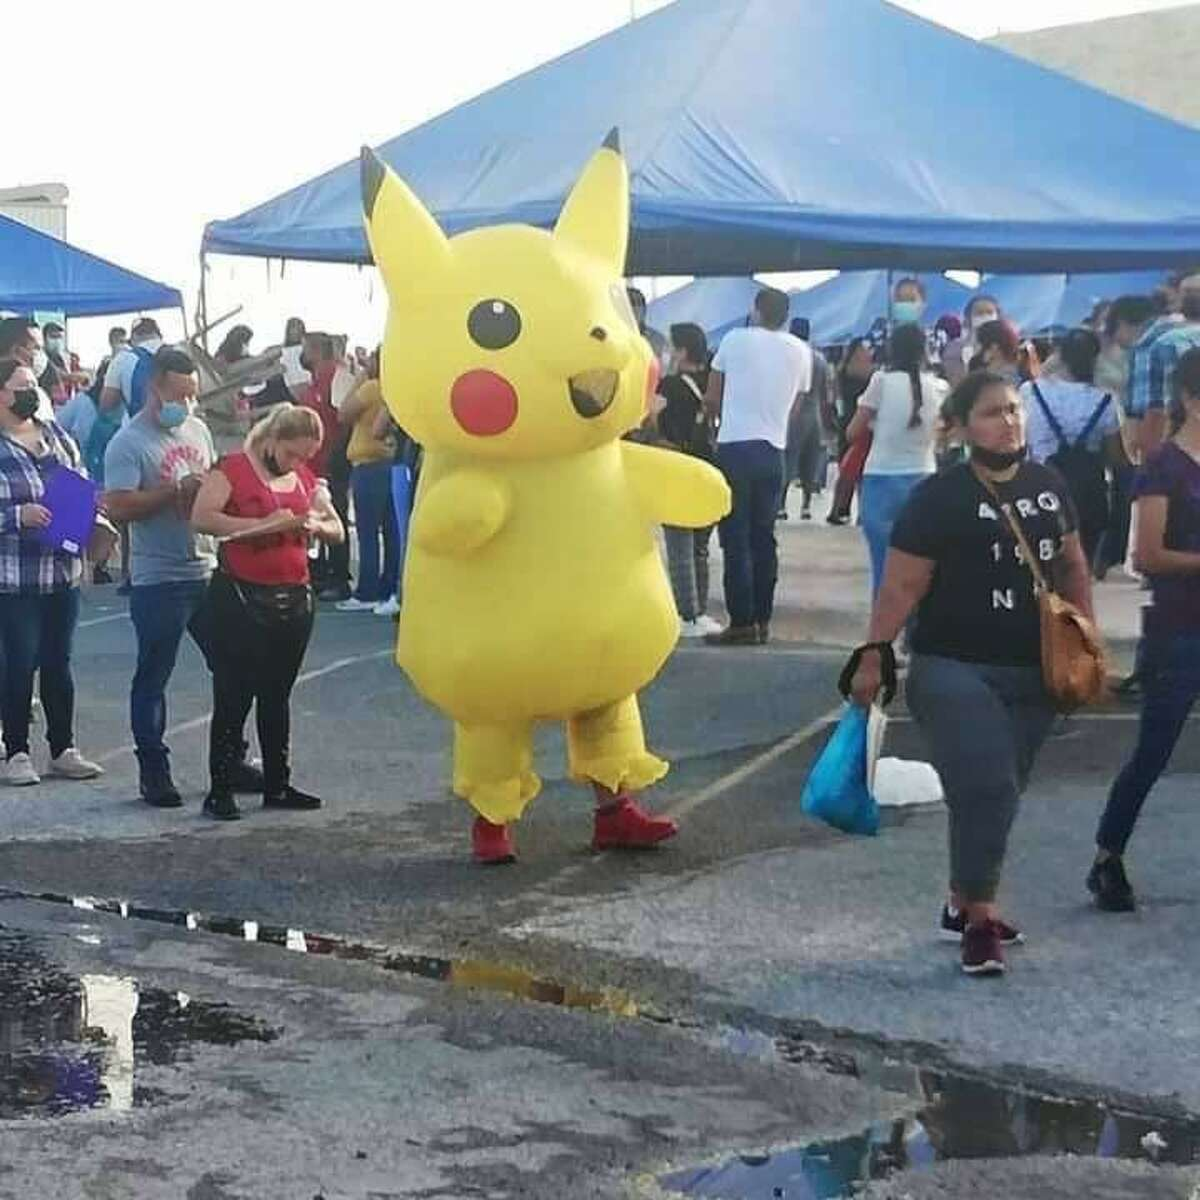 A person in line for the Nuevo Laredo vaccine drive entertains the crowd with their Pikachu costume.